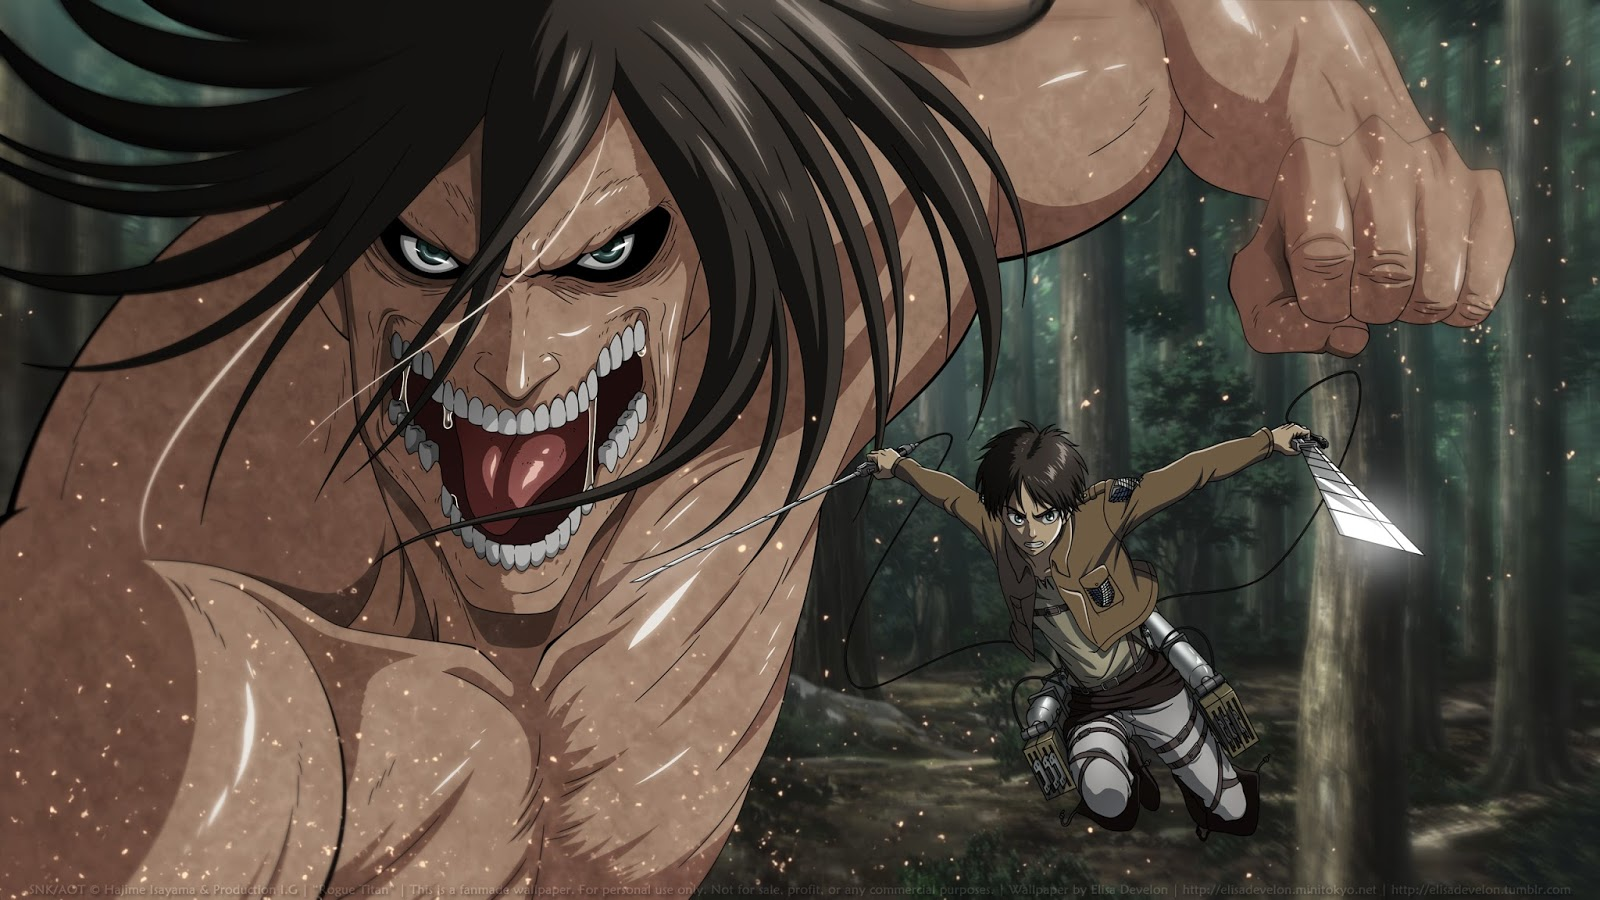 Yuriko nakao/getty images attack on titan is a popular anime series that has also spawned movies and video games. ANIME - WALLPAPER - GAMES: Attack On Titan Wallpapers